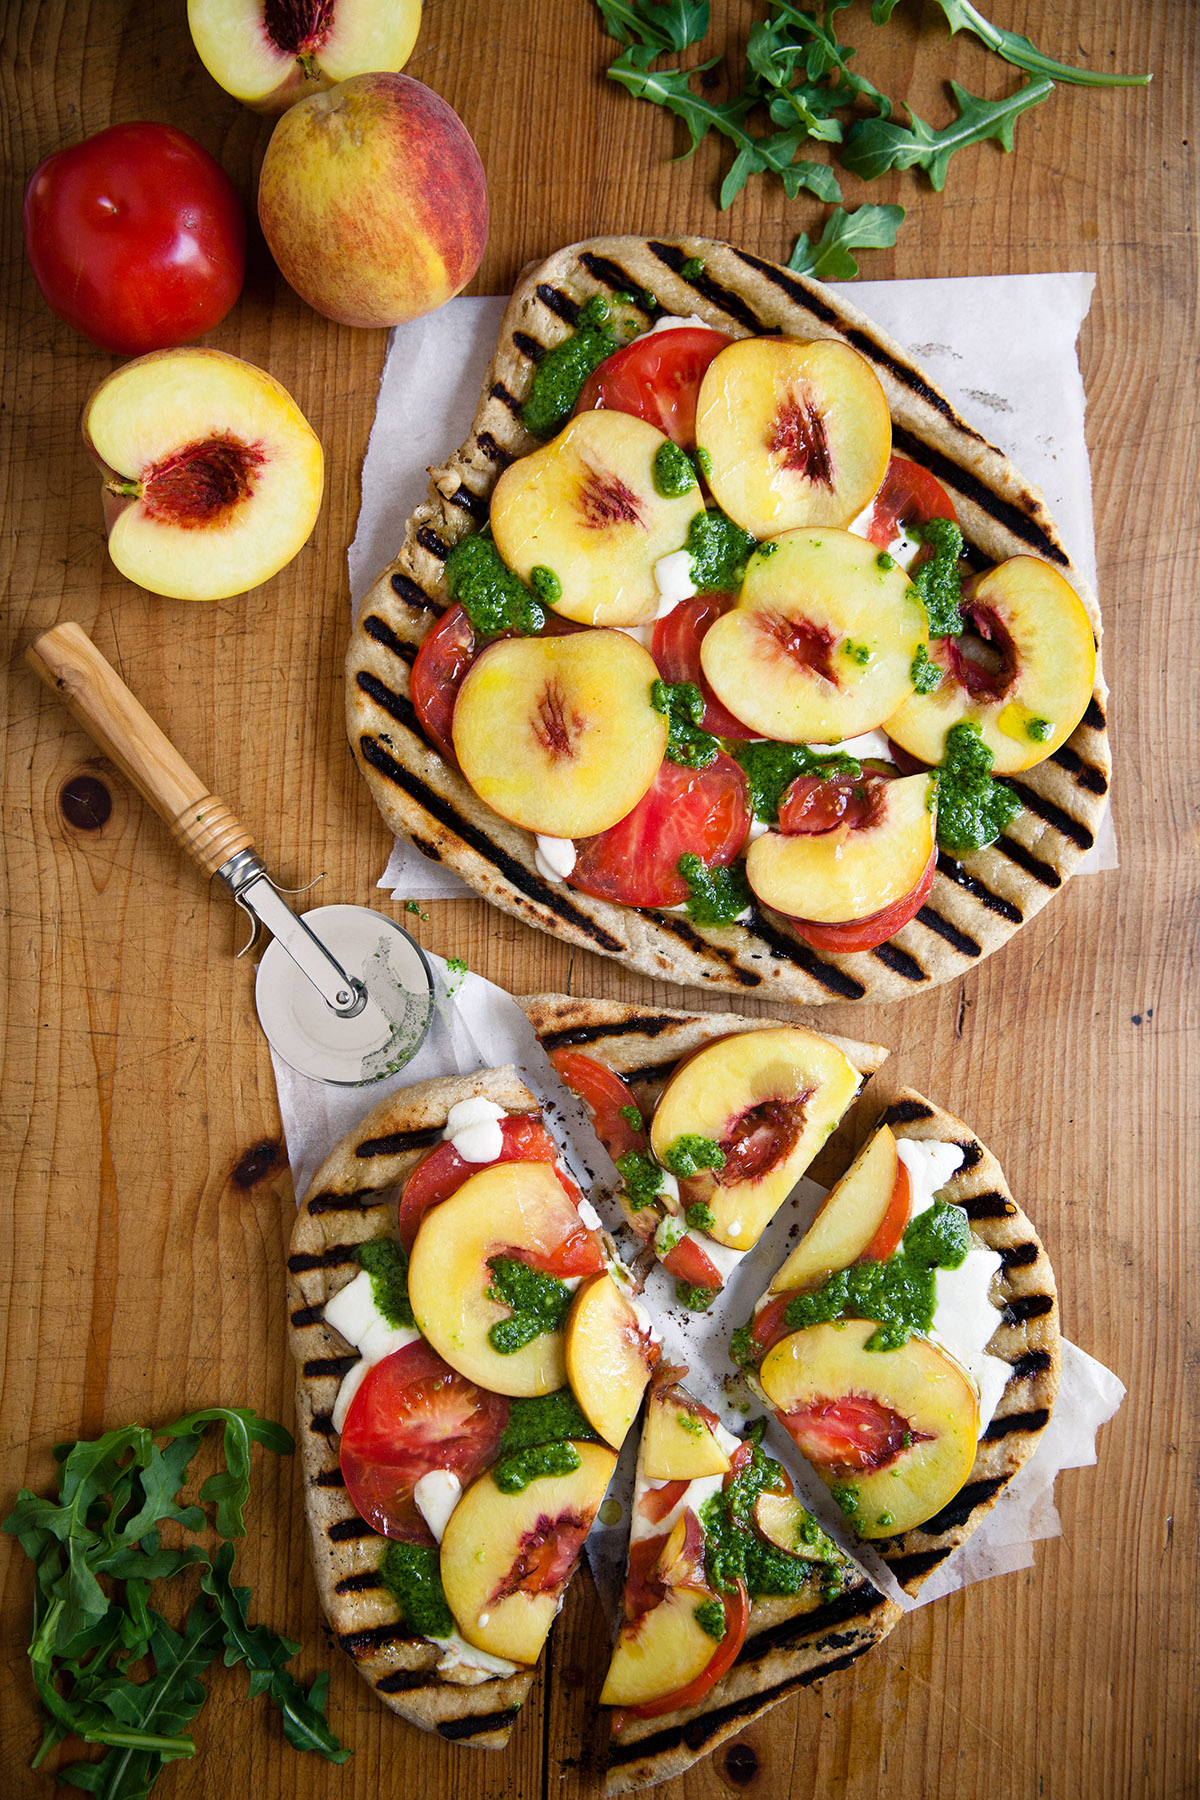 Grilled Peach and Tomato Pizza with Arugula Pesto